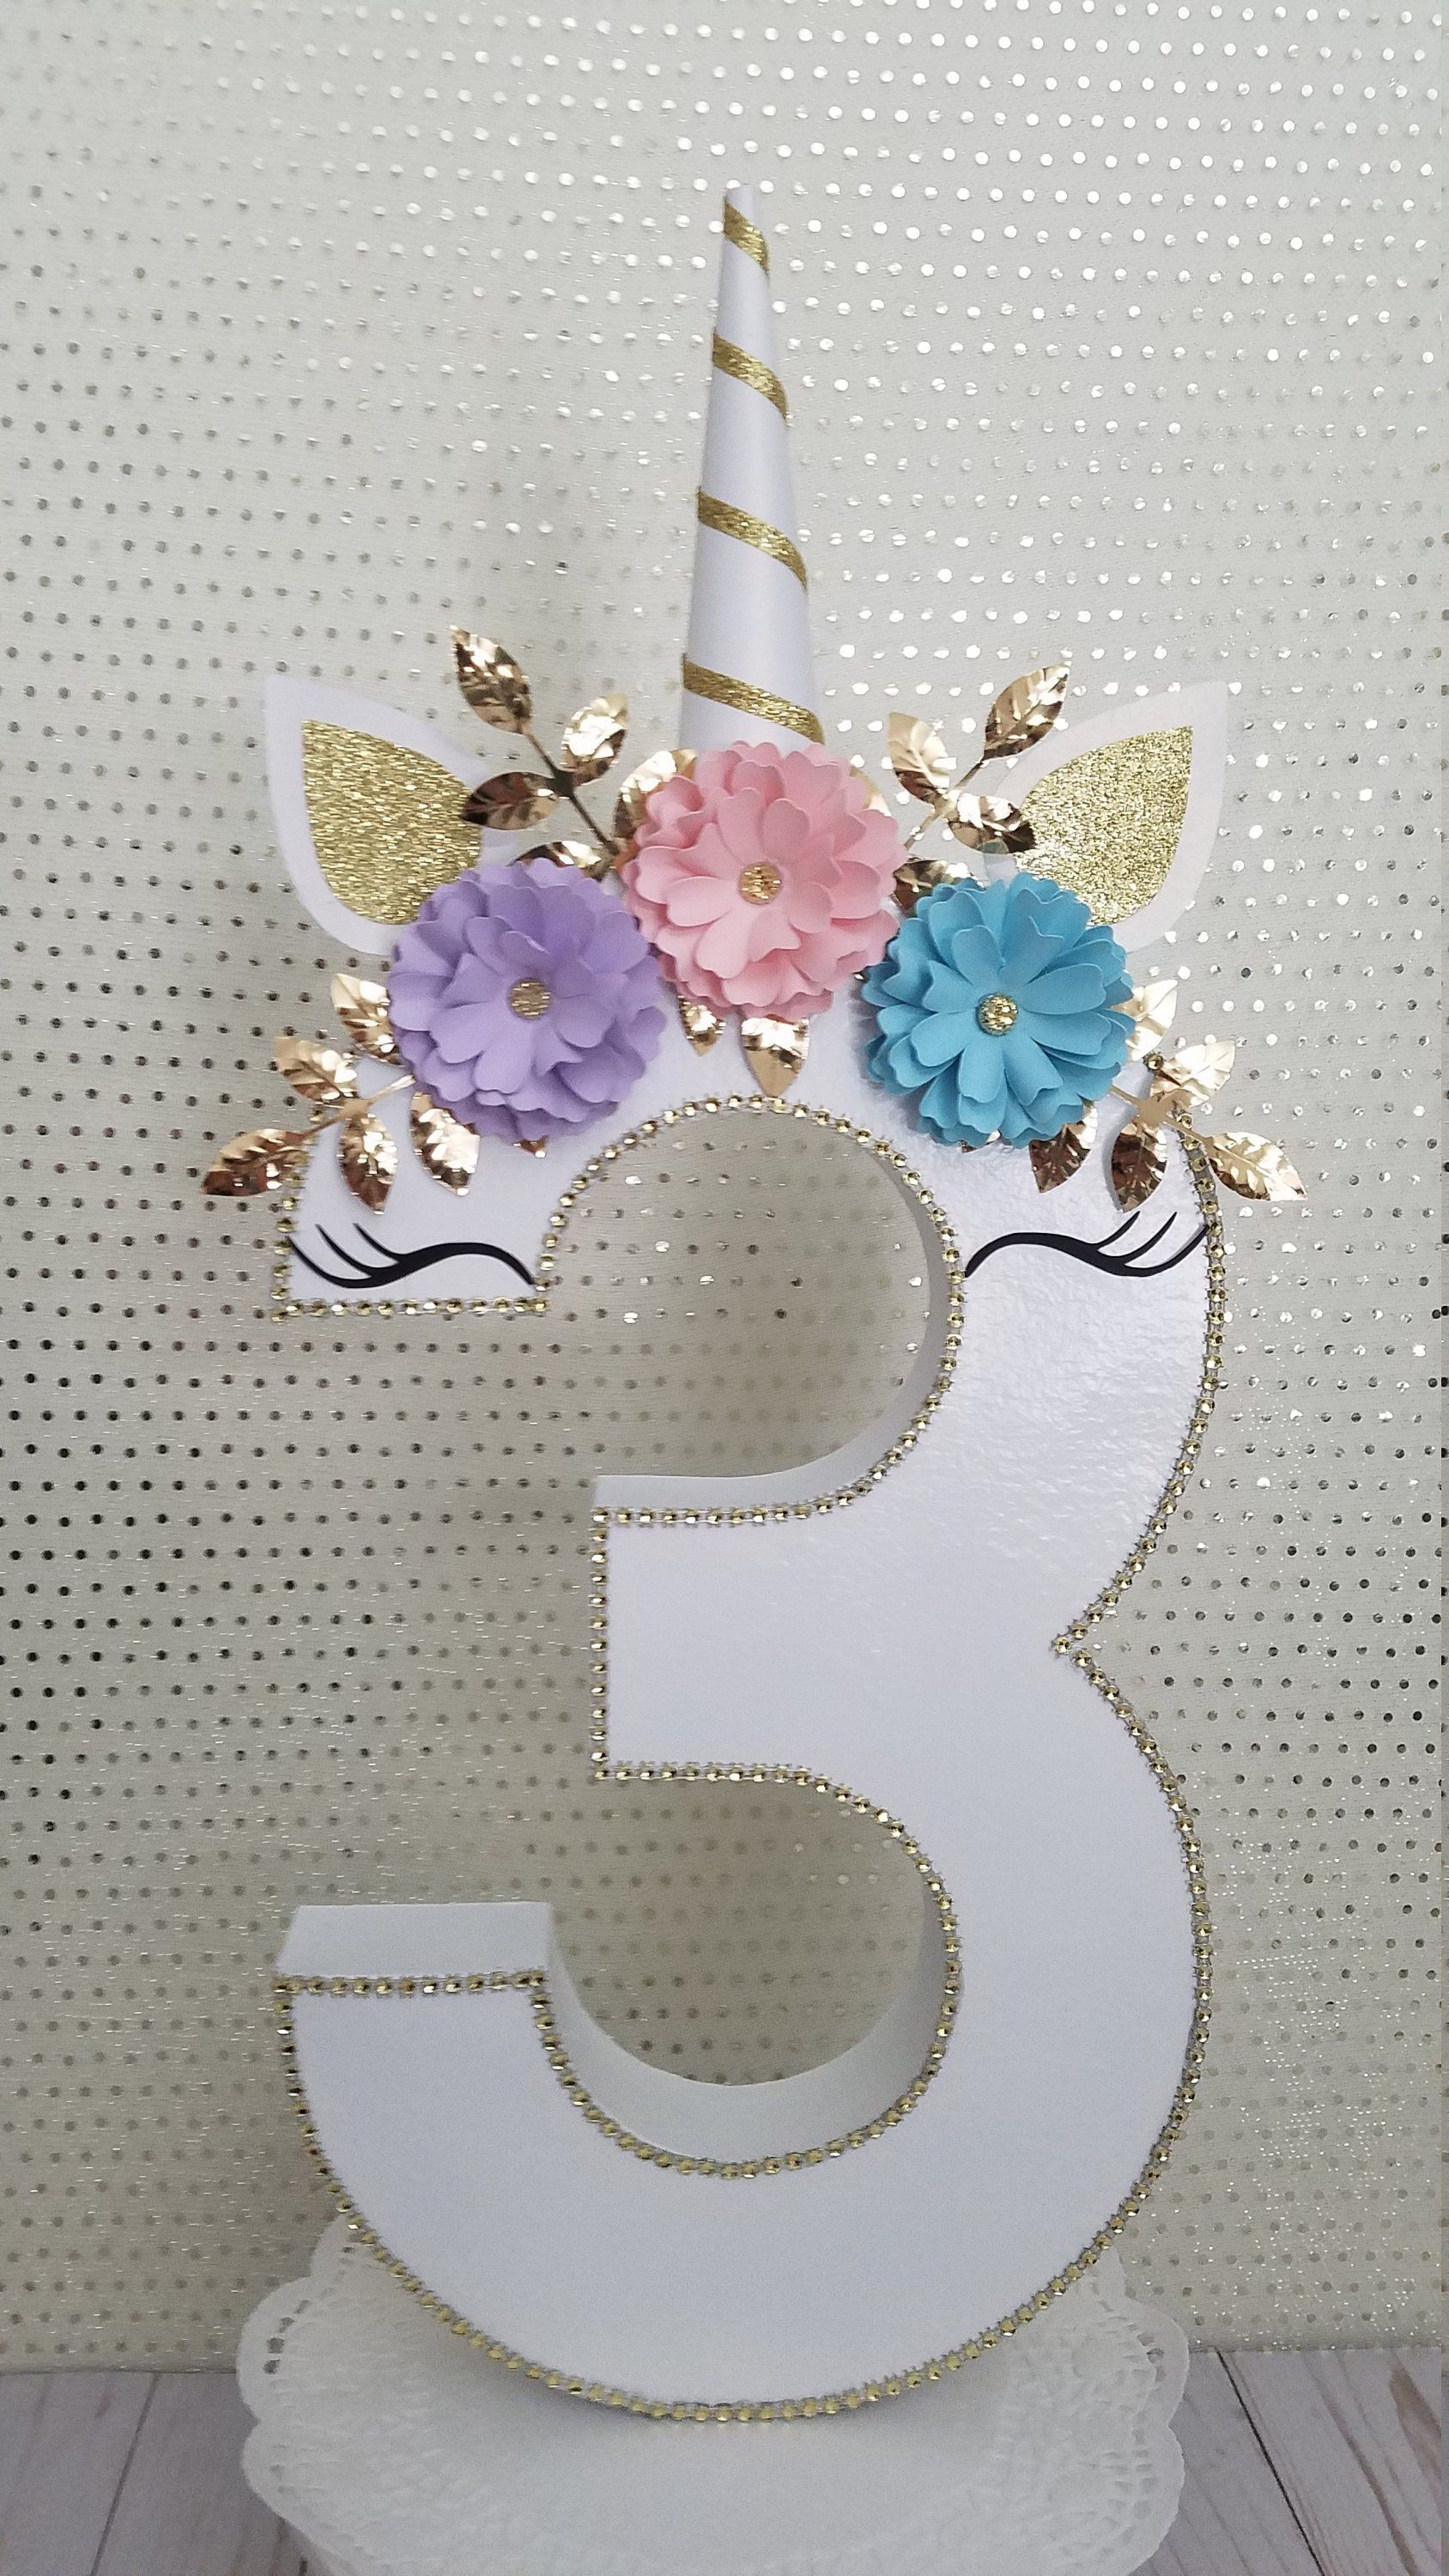 Unicorn birthday party, Unicorn number decor, Photo prop decor, Smash cake unicorn decor - Unicorn birthday party decorations, Unicorn birthday parties, Unicorn themed birthday party, Unicorn birthday, Unicorn party, Unicorn theme party - 2 inch This number or any other number can be designed in any color to match your theme  If you need additional numbers send me a message and I will love to create that special number that you need  ANY THEME CAN BE DONE  CUSTOM ORDERS ARE ALWAYS WELCOME  The flowers may get flattened while shipped but can be brought back to their original shape with just a little fluffing by hand 0) Please note that these papier mache numbers are hand painted and decorated and may have some very minor imperfections  Thank you for visiting my shop!!!